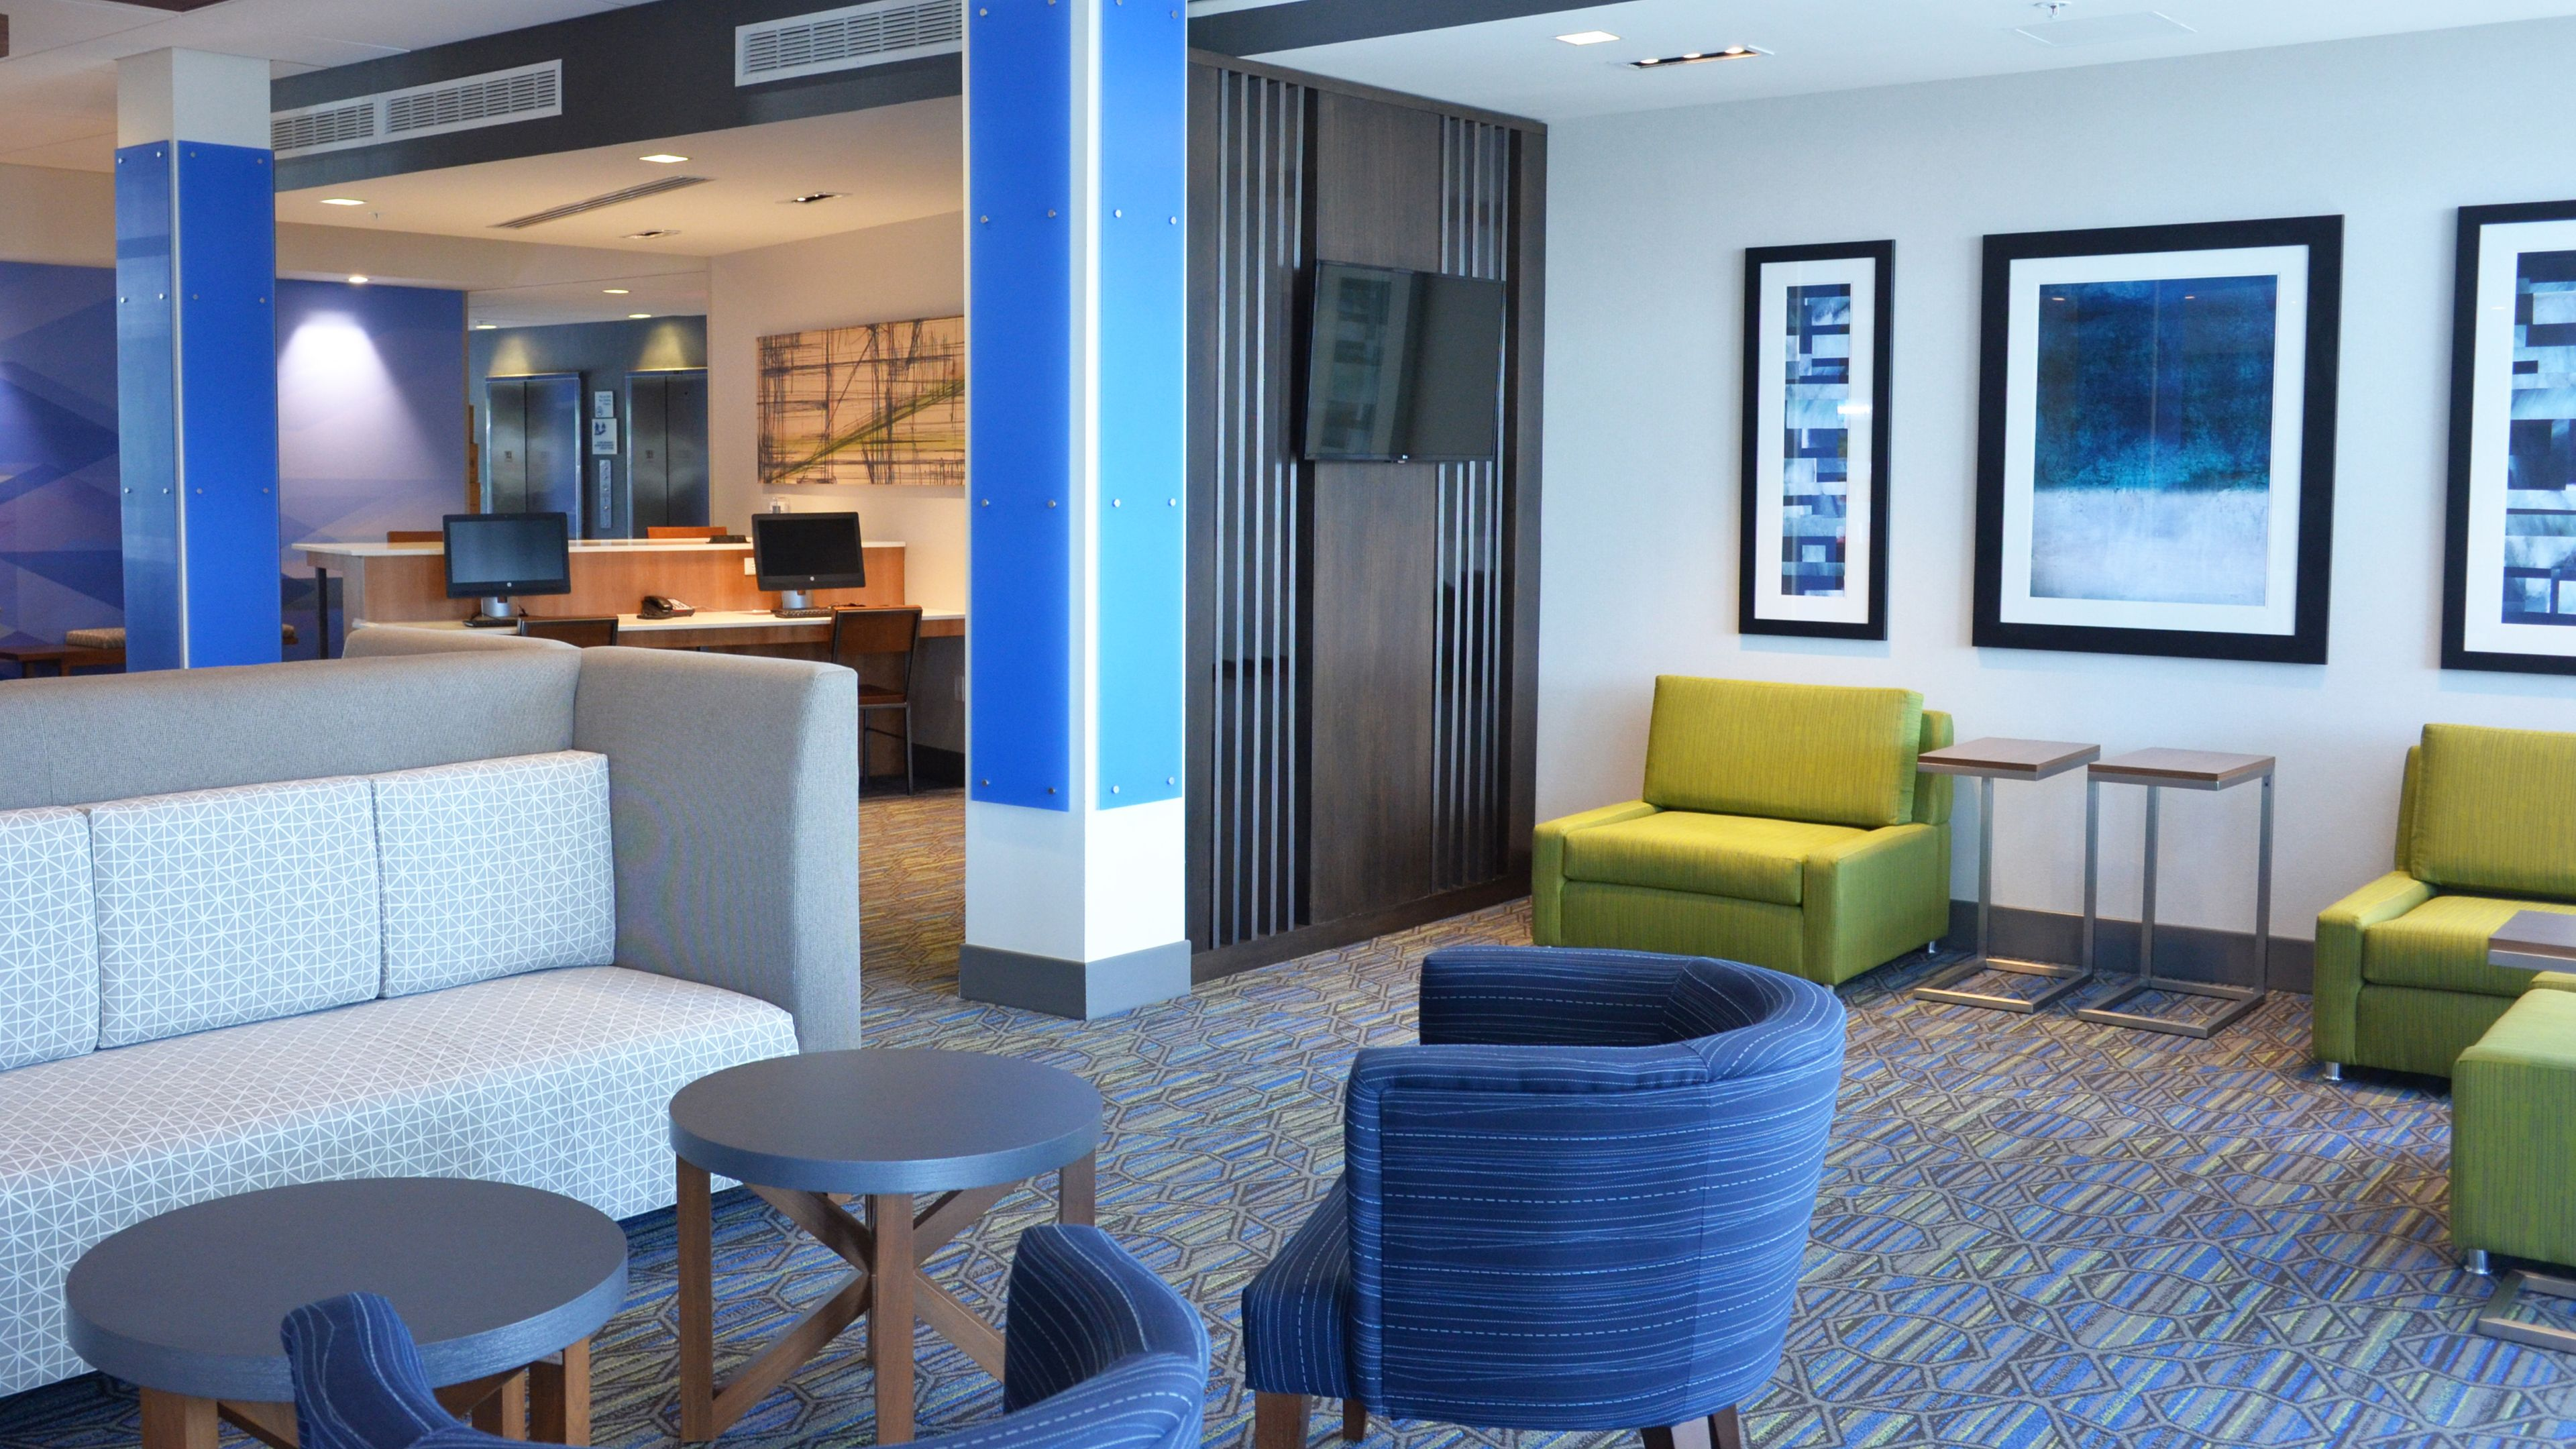 Holiday Inn Express & Suites Jacksonville W - I295 and I10 image 4